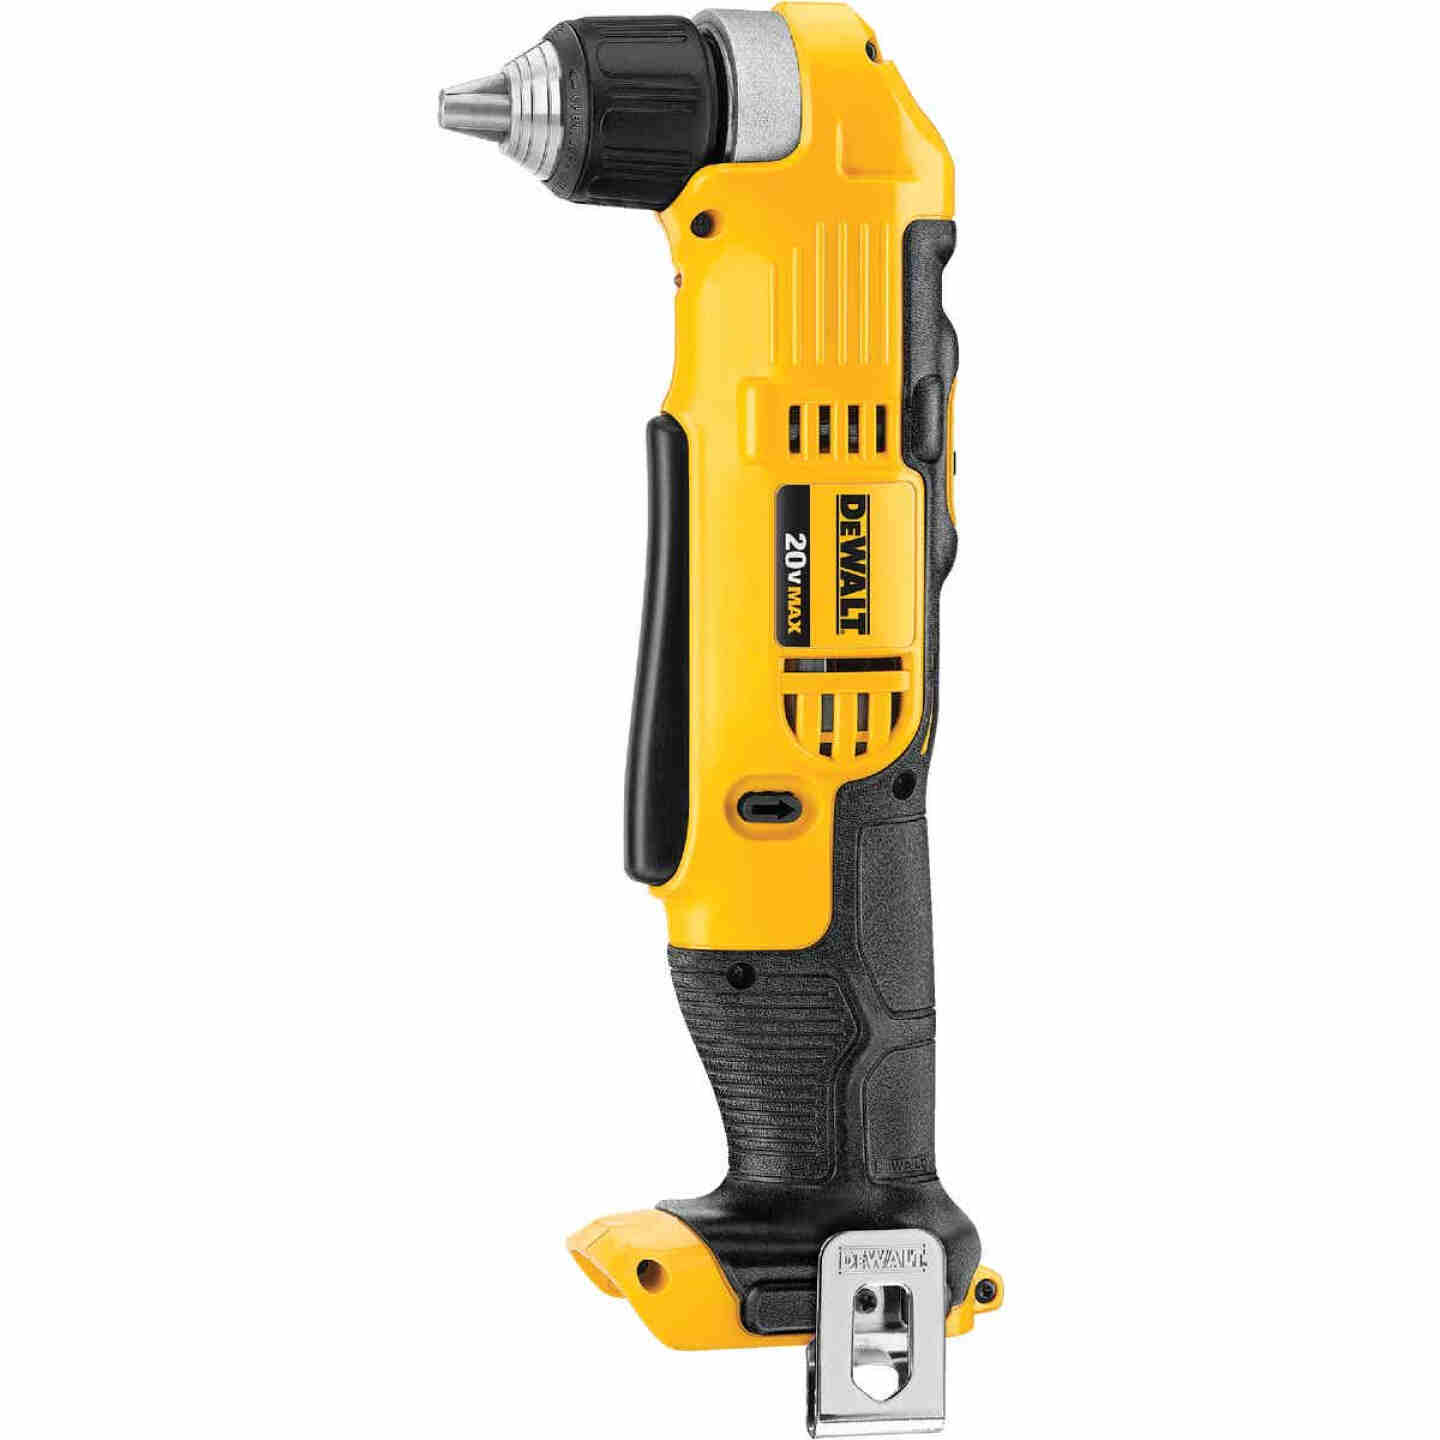 DeWalt 20 Volt MAX Lithium-Ion 3/8 In. Cordless Angle Drill (Bare Tool) Image 1